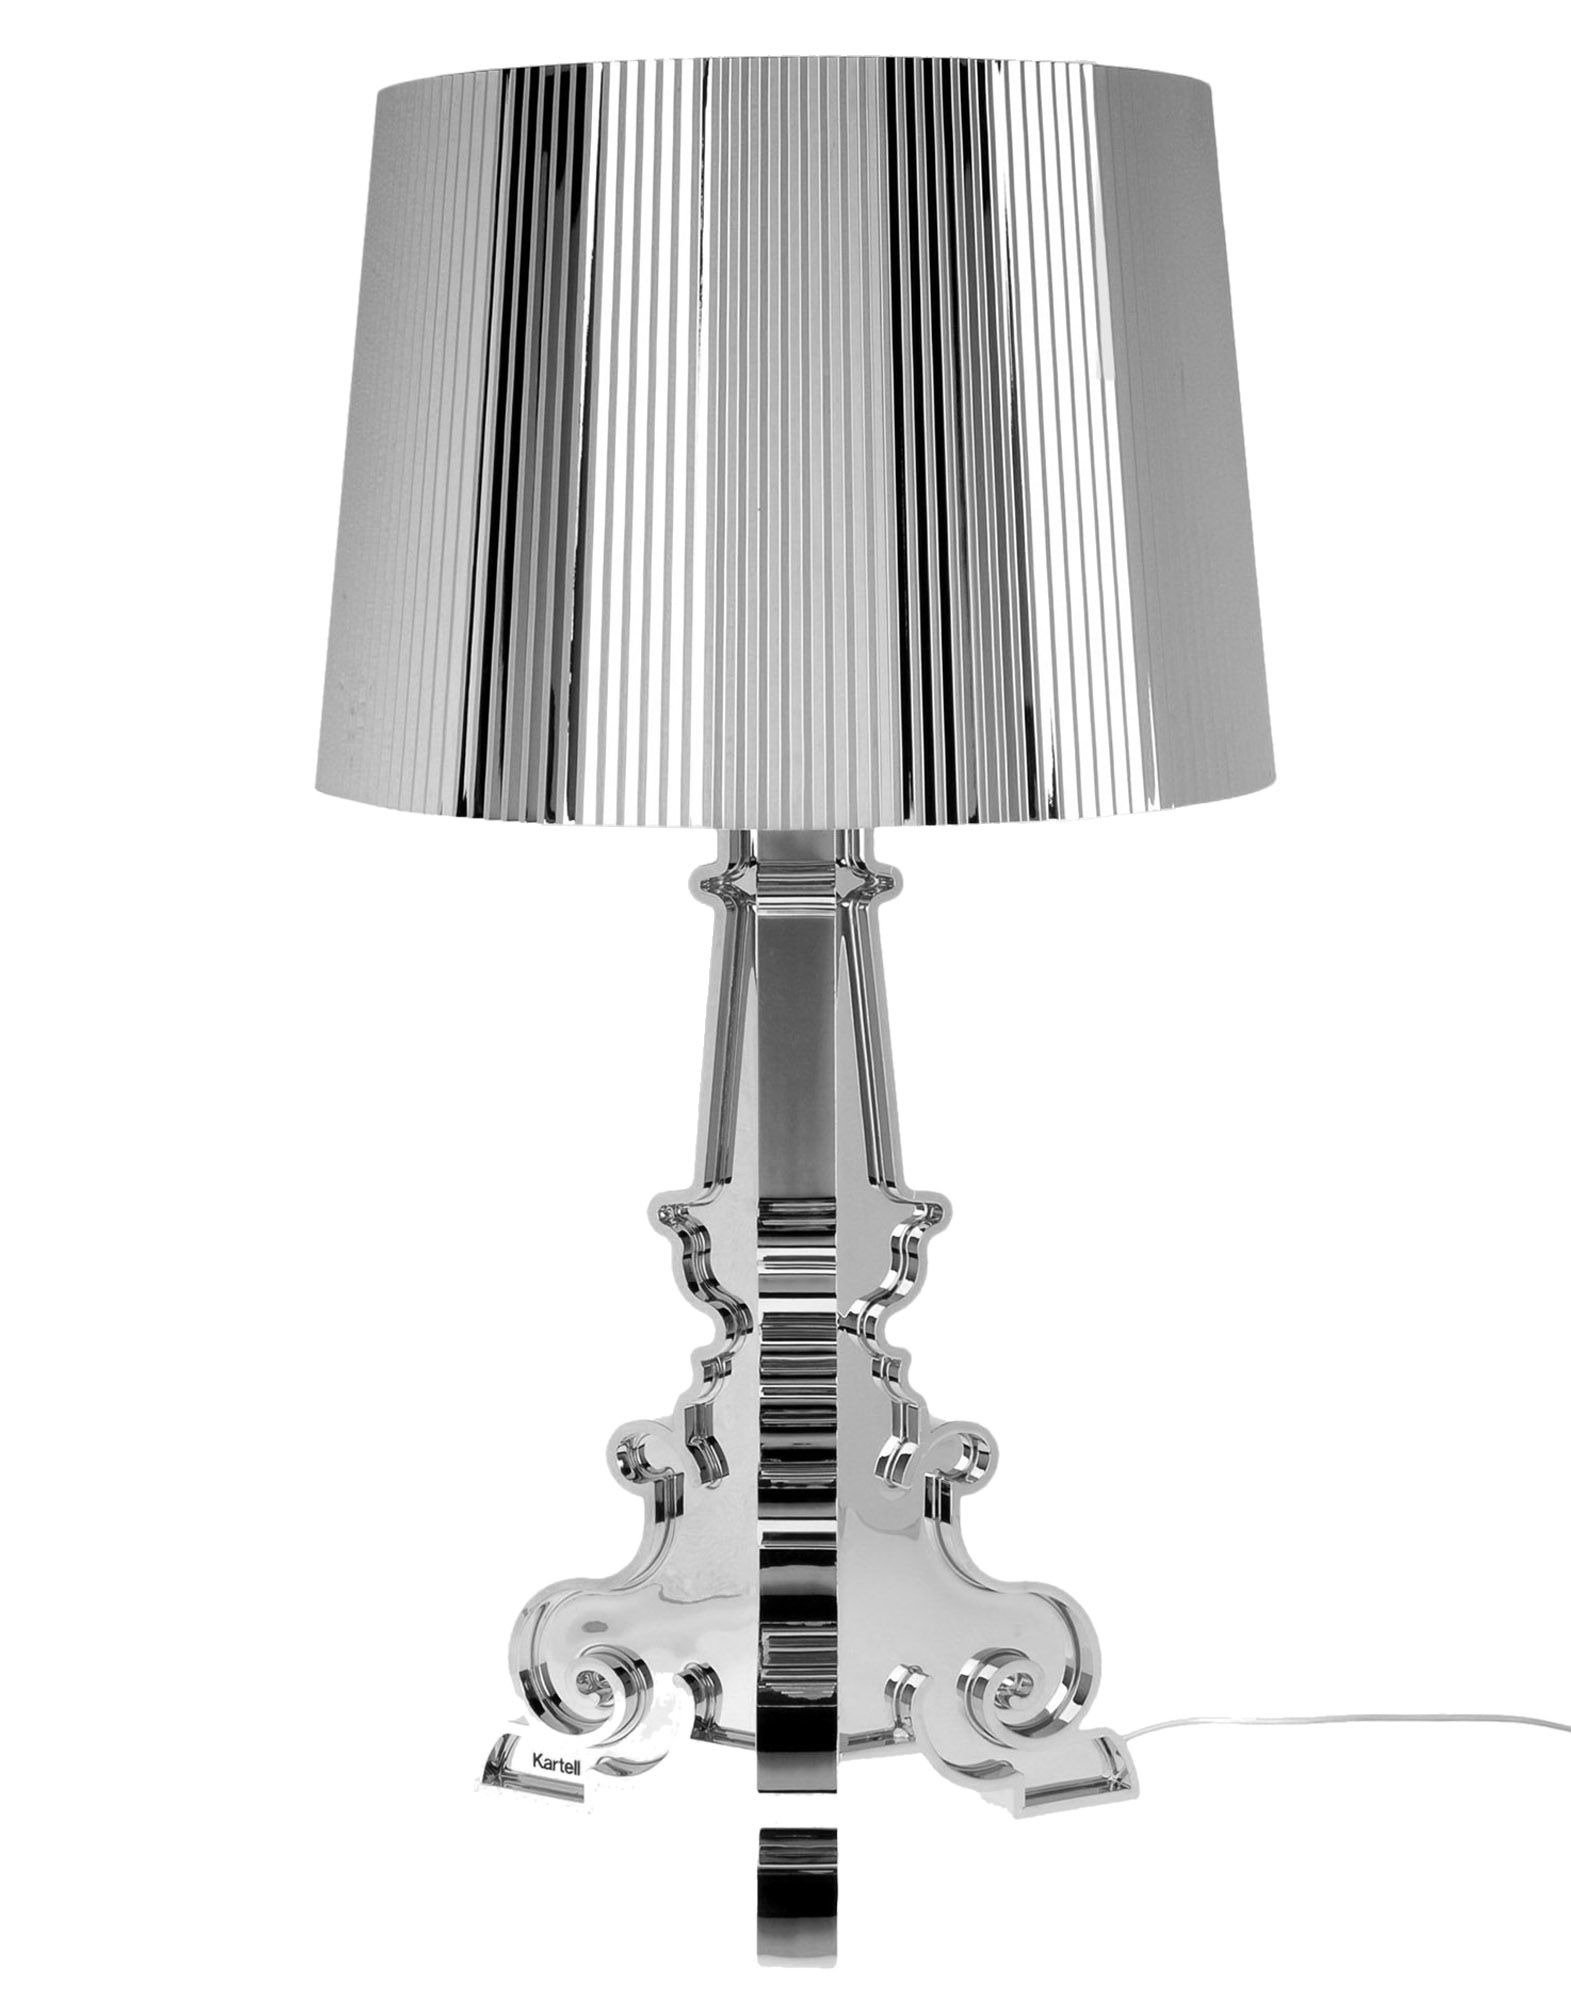 KARTELL Настольная лампа nordic modern minimalist pendant lights bedside hanging lamp industrial lighting for bedroom living room restaurant bar 90 260v